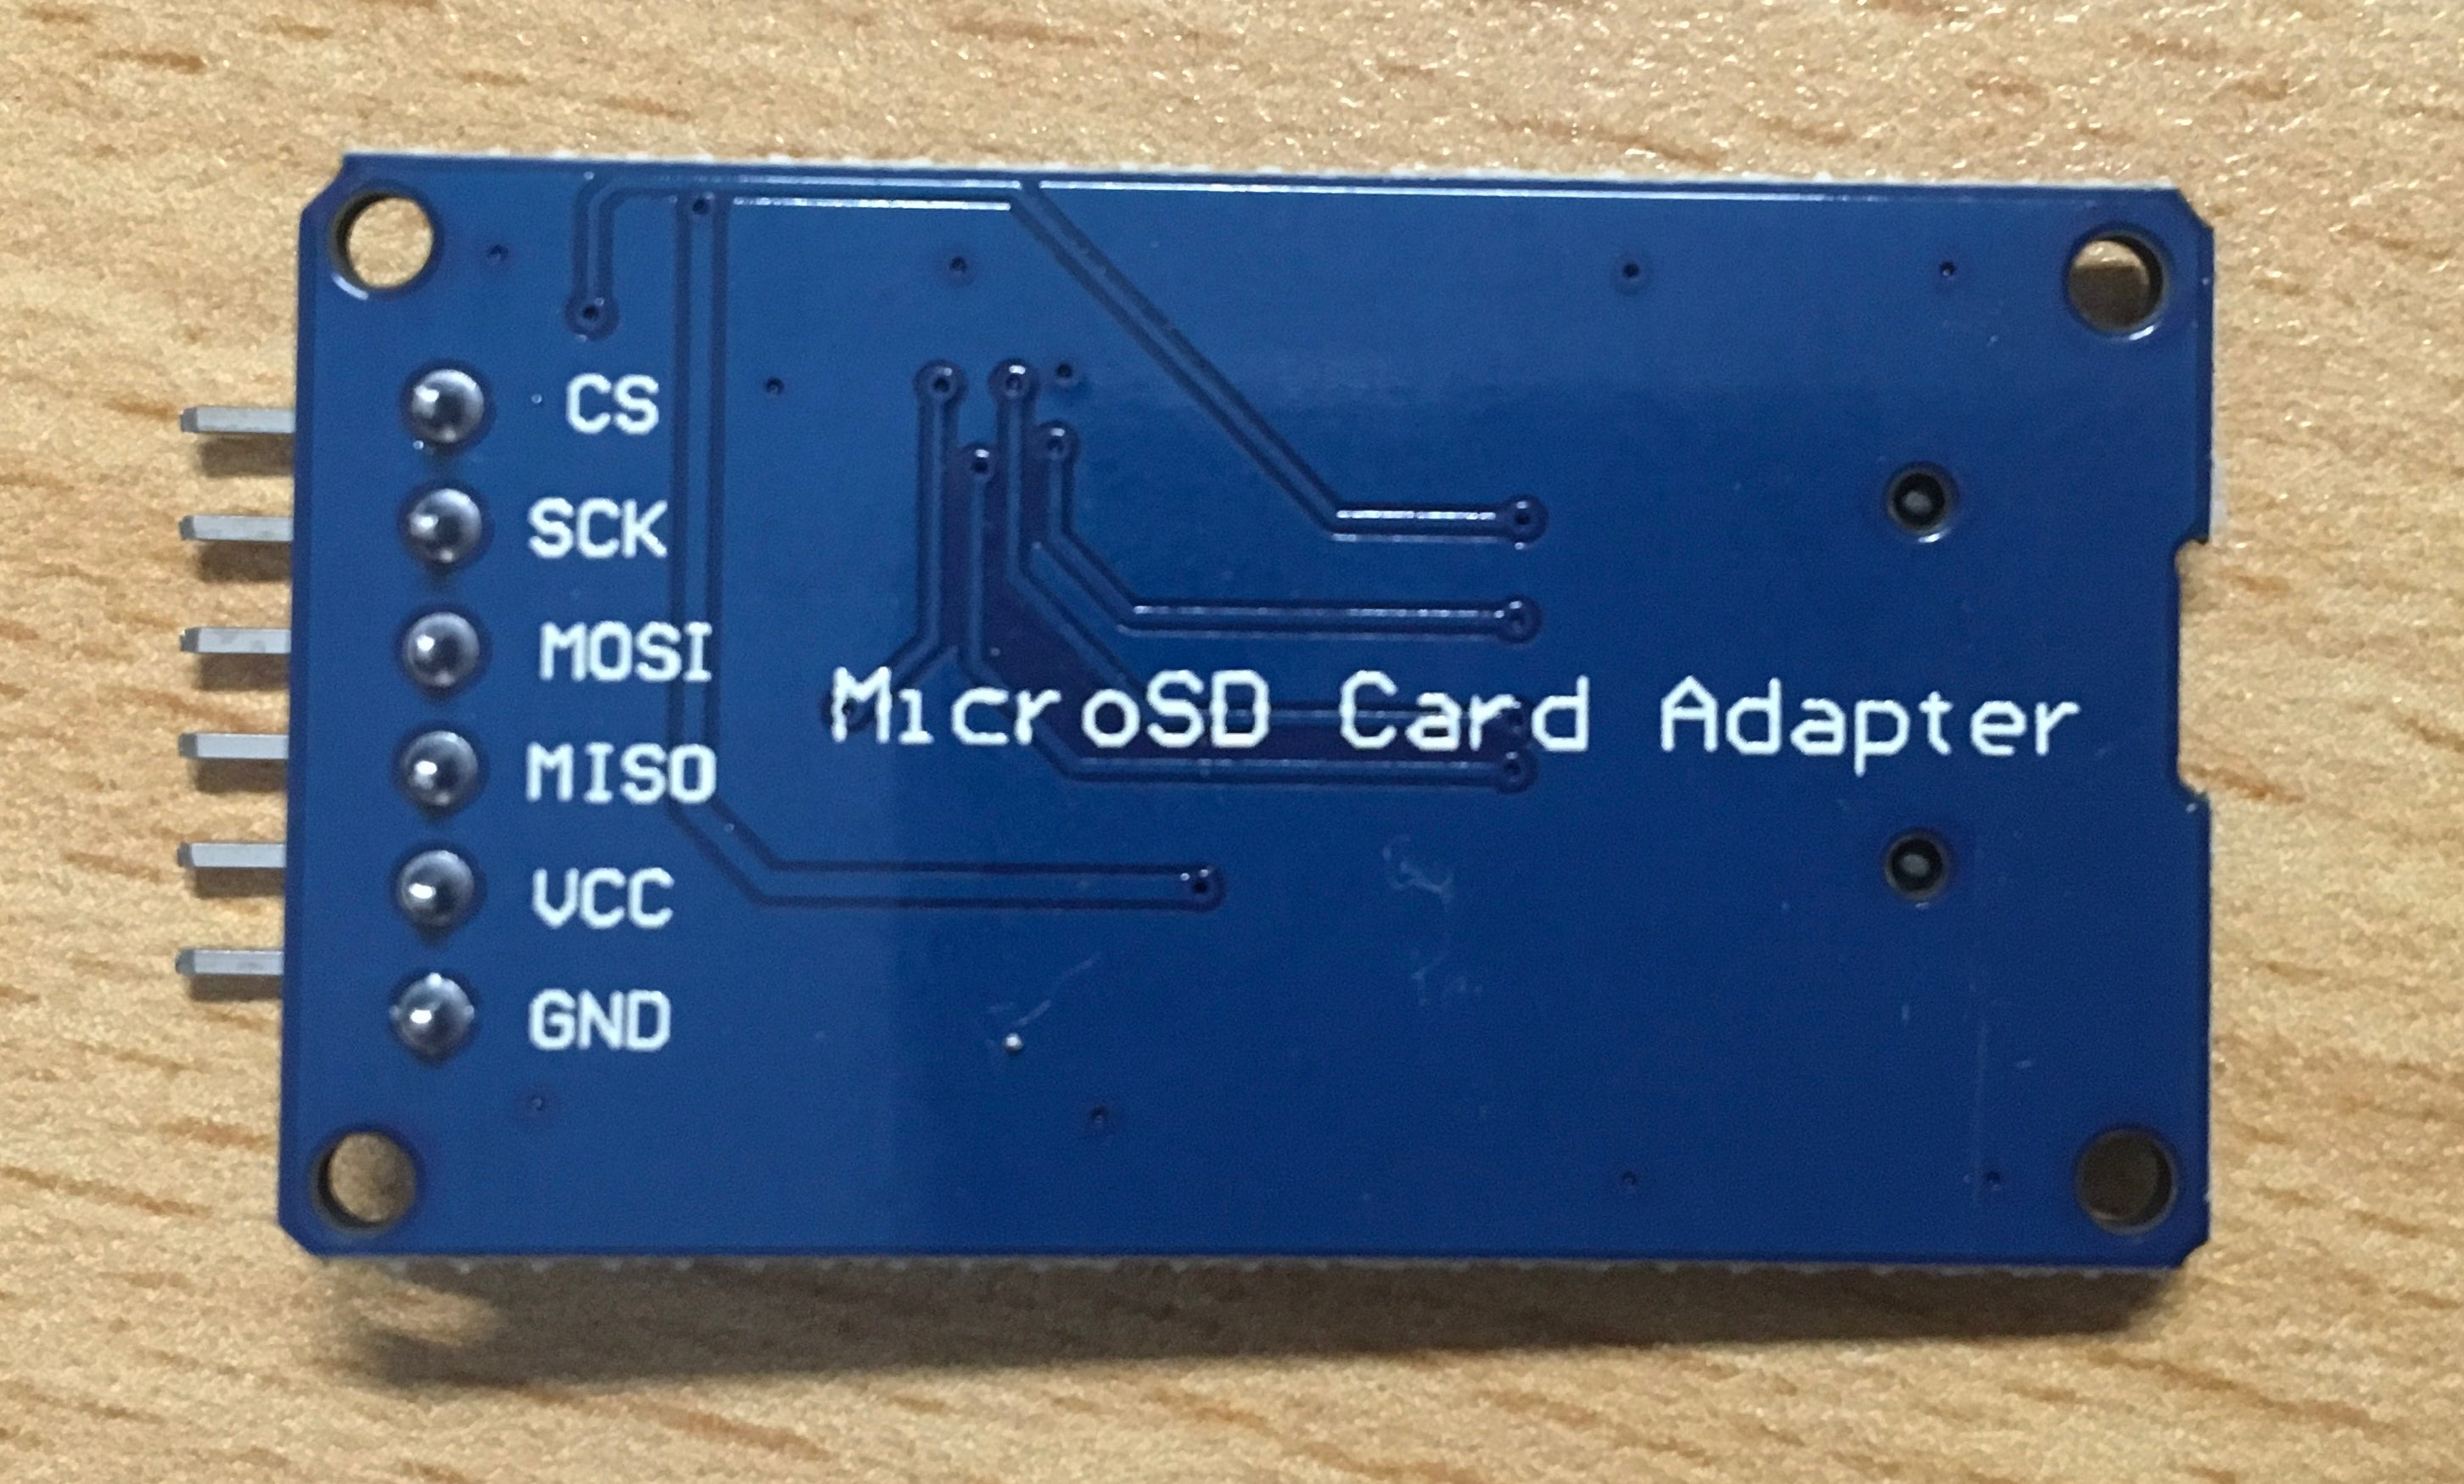 SD Card Mini TF Card Reader Module for Arduino, Raspberry, nodeMCU SPI - Server On The Move